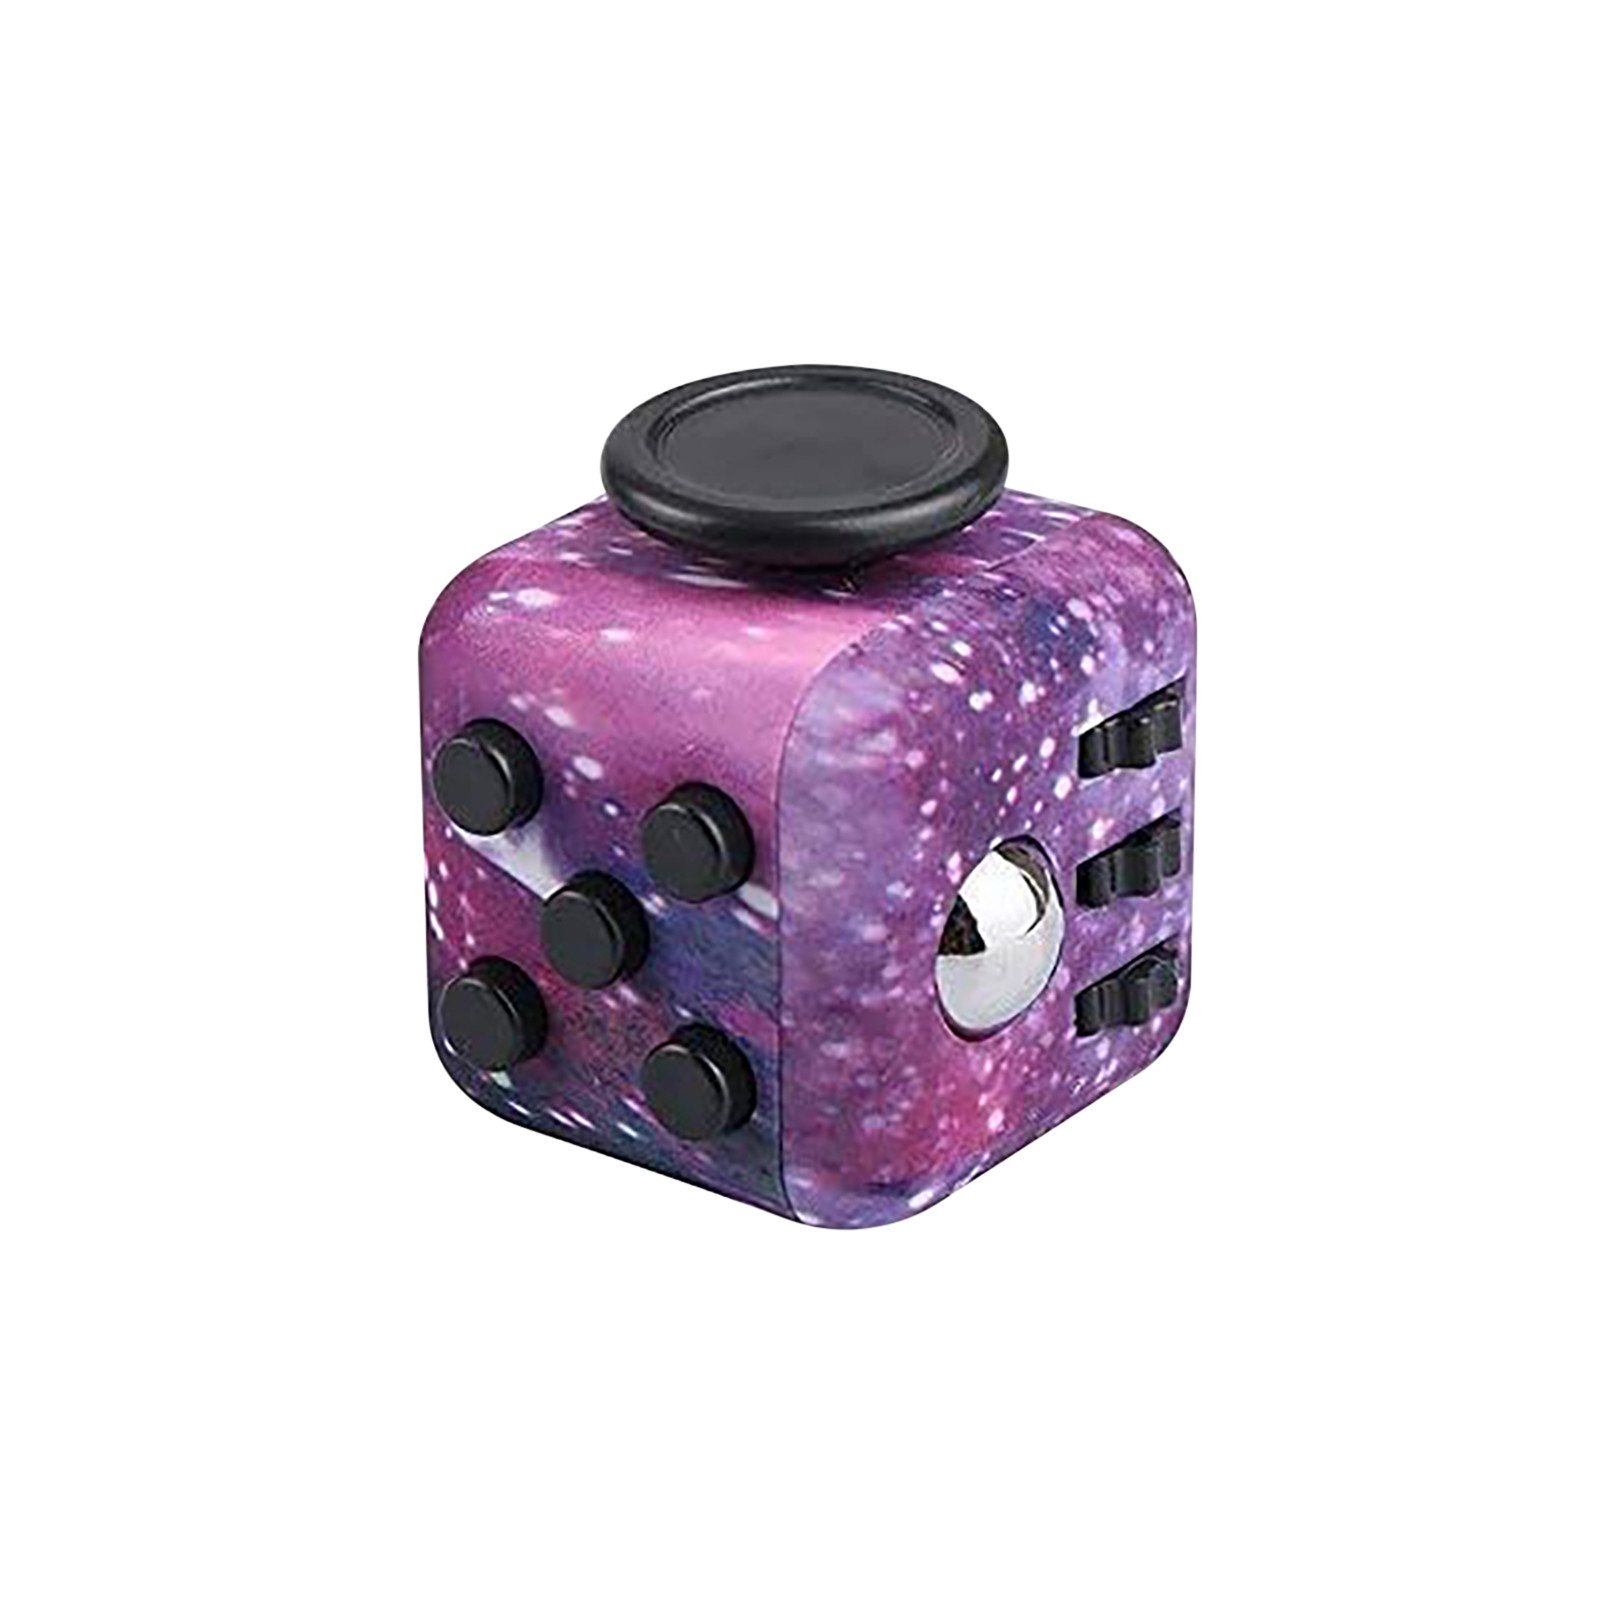 Toys Autism Reduce-Stress Fidget Anxiety Relief Premium-Quality Kids Cu-Be And for All-Ages img5